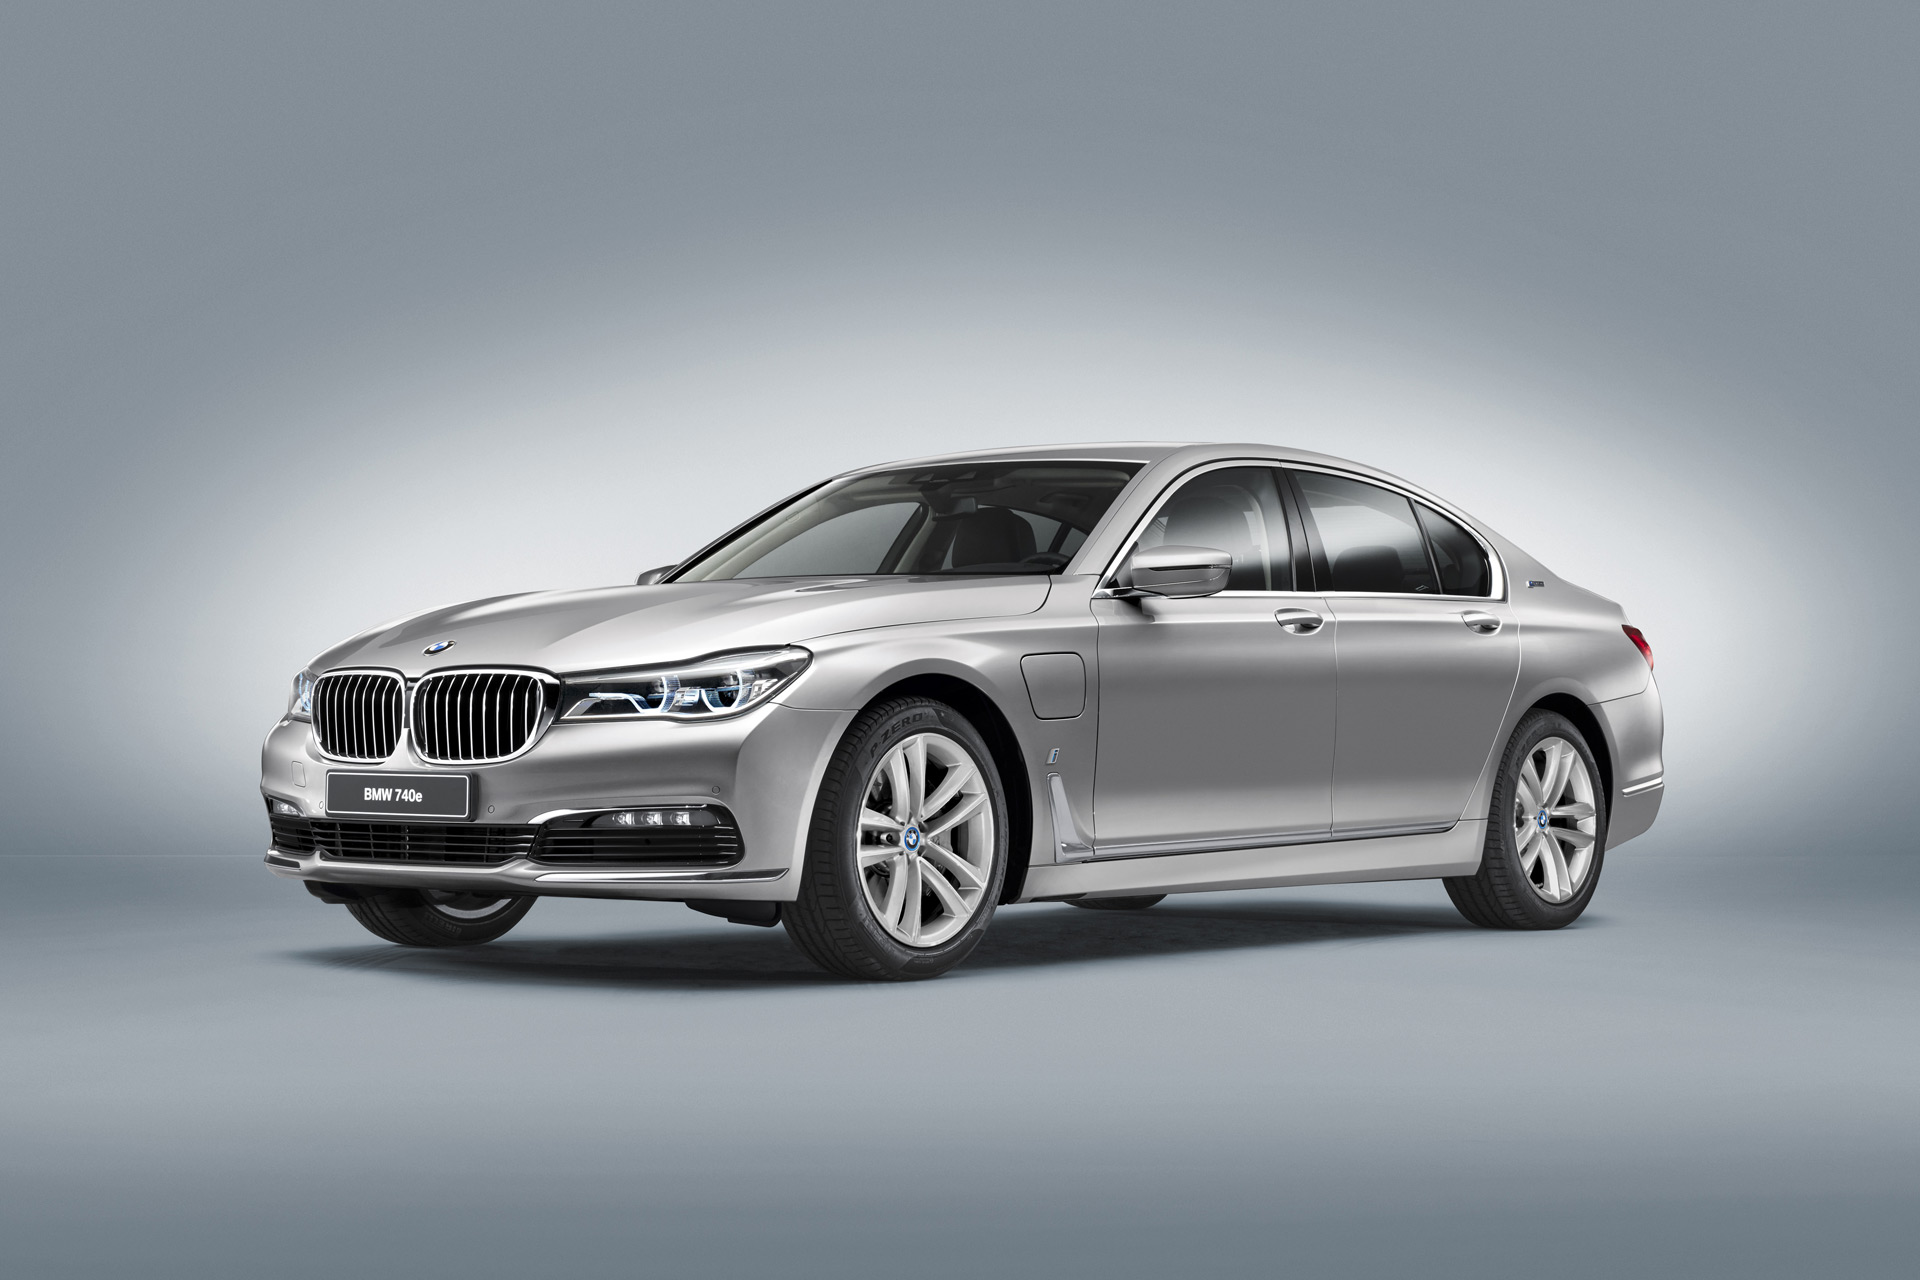 Electrified cars from core BMW brand to be designated iPerformance